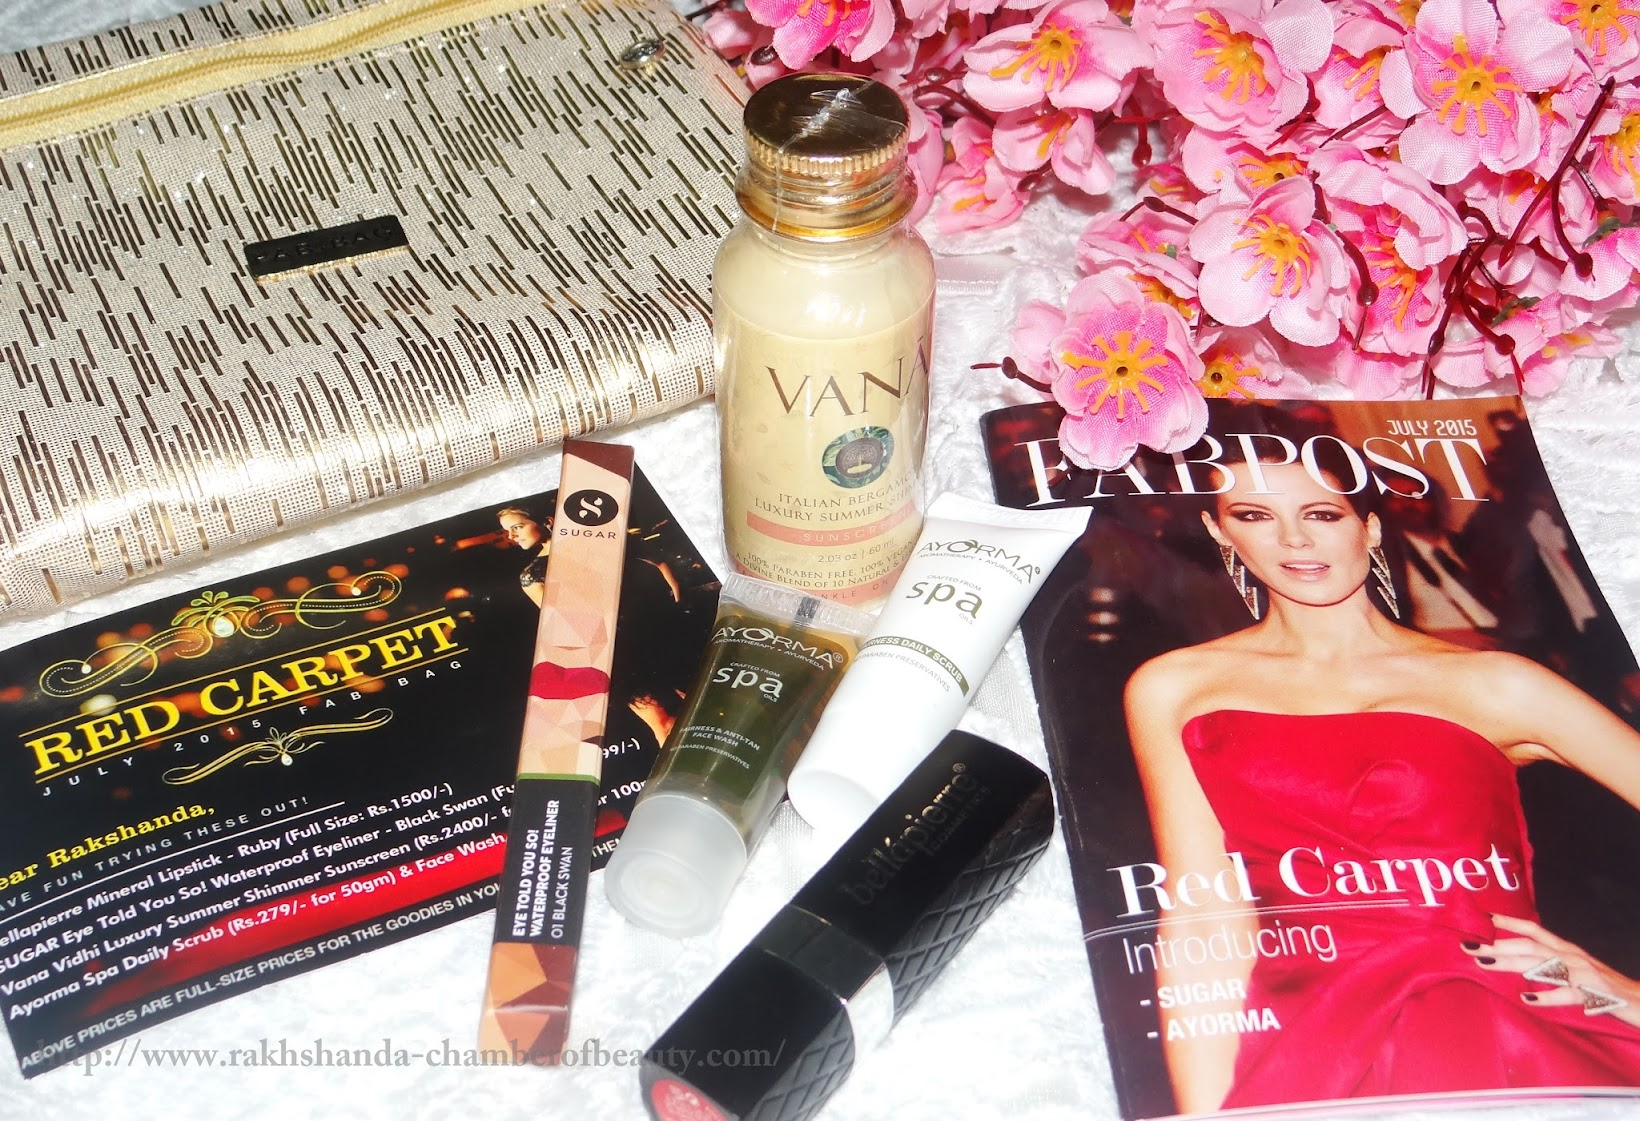 My July Fab Bag- The Red Carpet Edition | Review, swatches, Fab bag review, July Fab bag, Bellapiere cosmetics, Sugar eyeliner, Vana sunscreen, Ayorma fairness face wash, Indian beauty blogger, Chamber of beauty